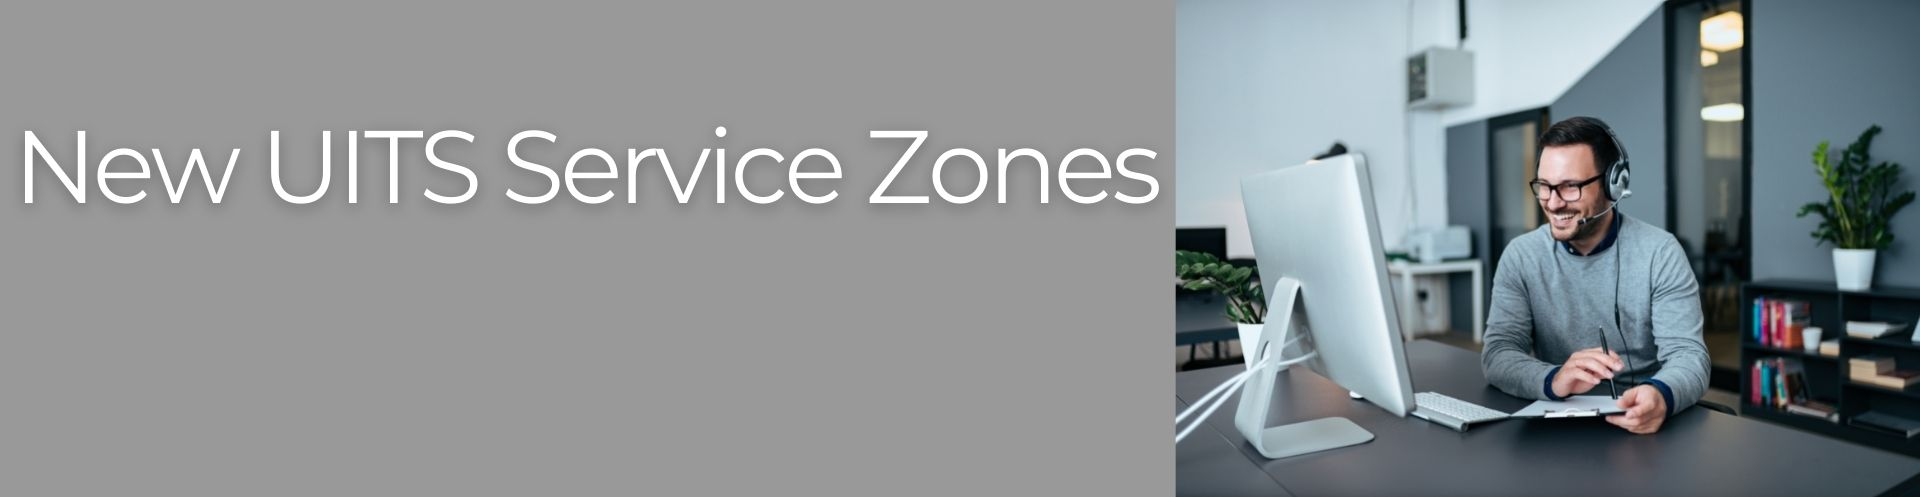 Explore the new service zones for UITS!